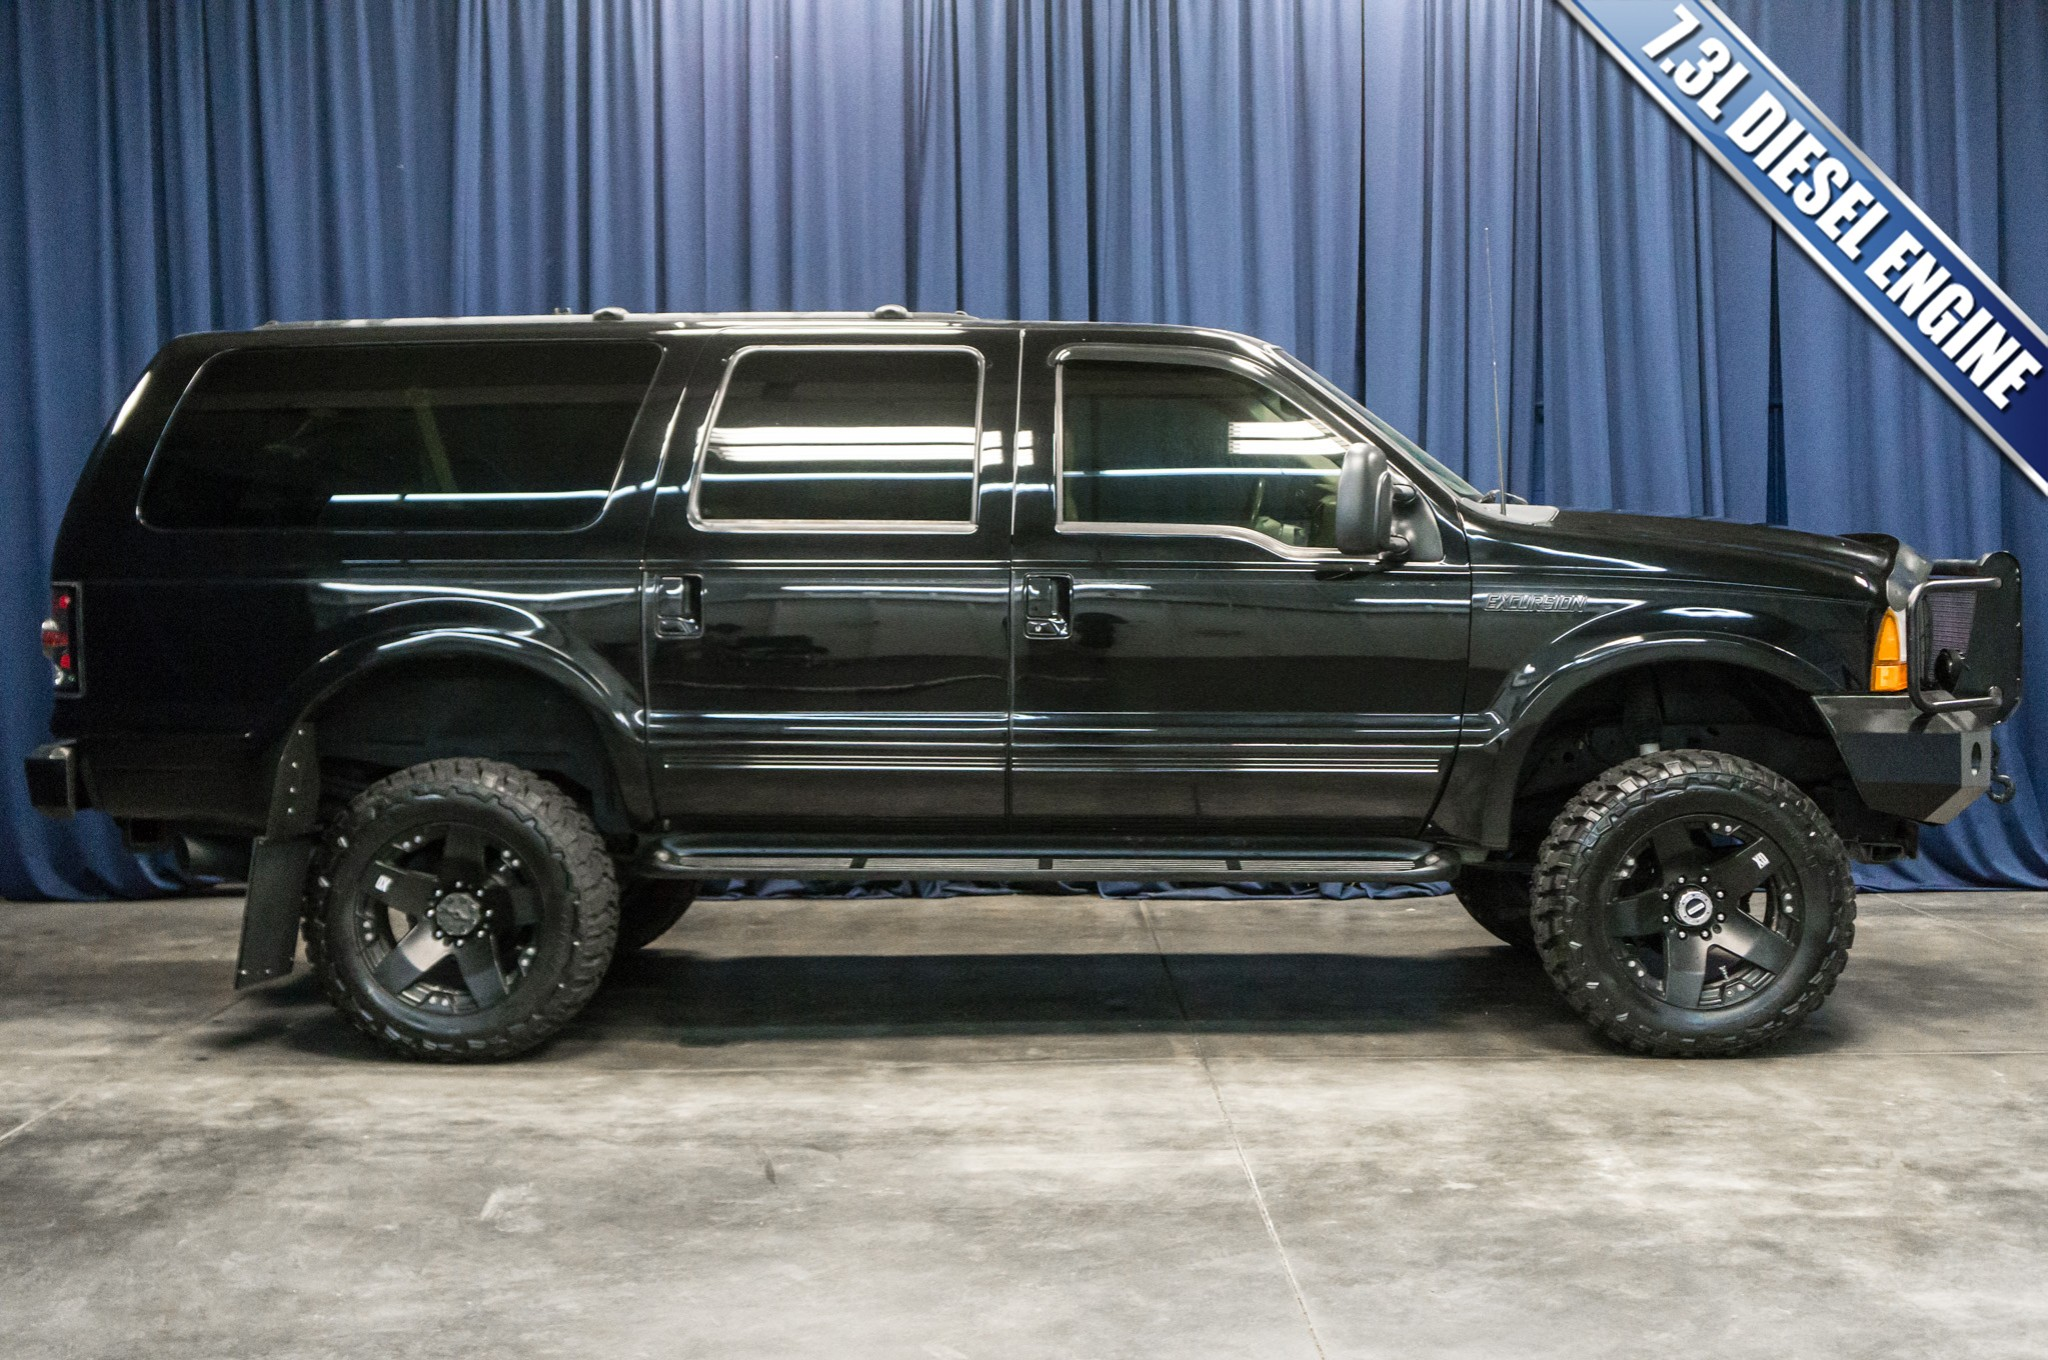 ratings with reviews news ford msrp images diesel amazing excursion